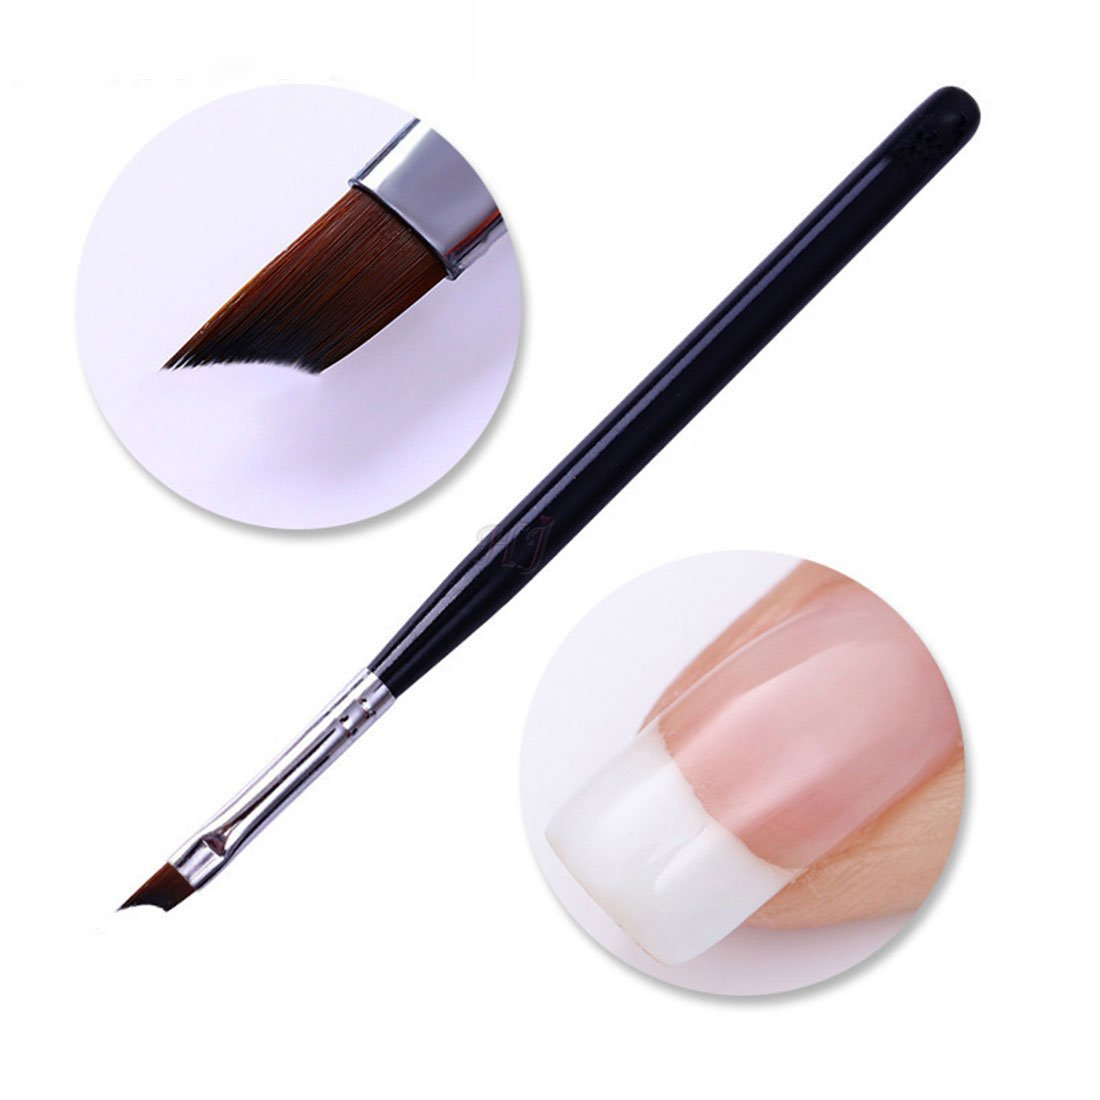 Oblique Head French Tip Nail Brush Black Handle UV Gel Acrylic Painting Drawing Pen Pack of 1